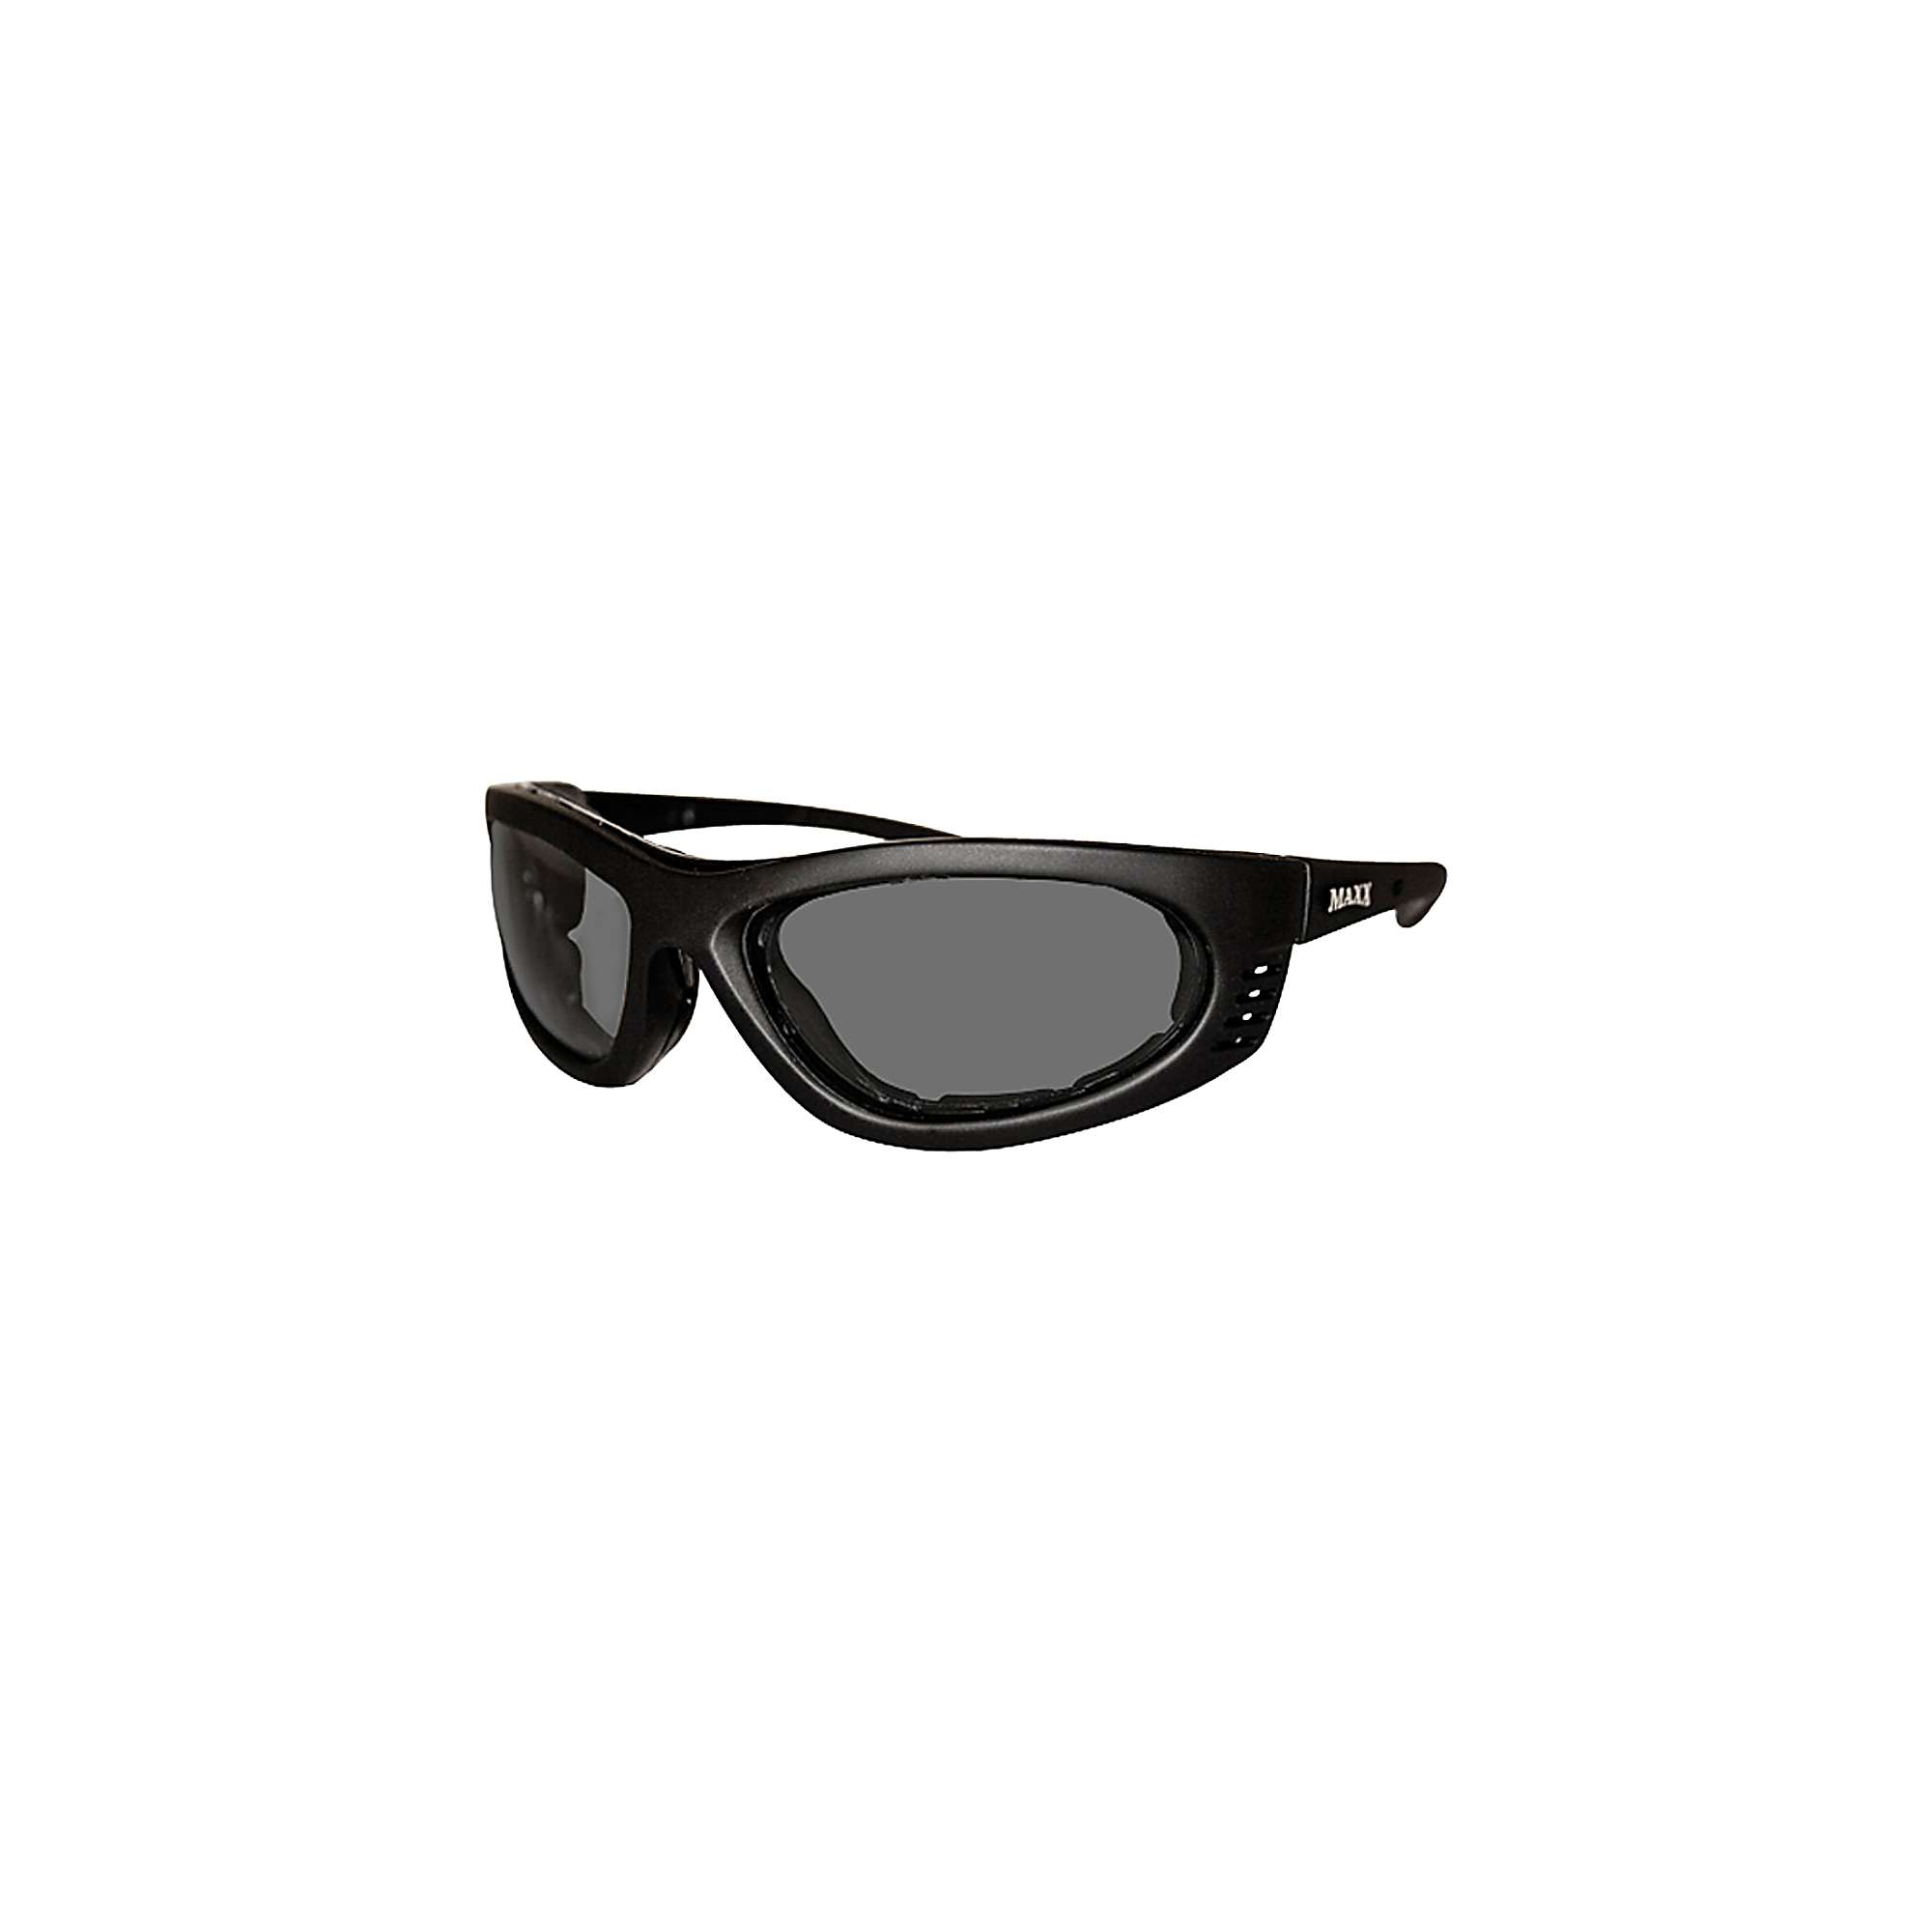 Maxx Hd Talon Sunglasses